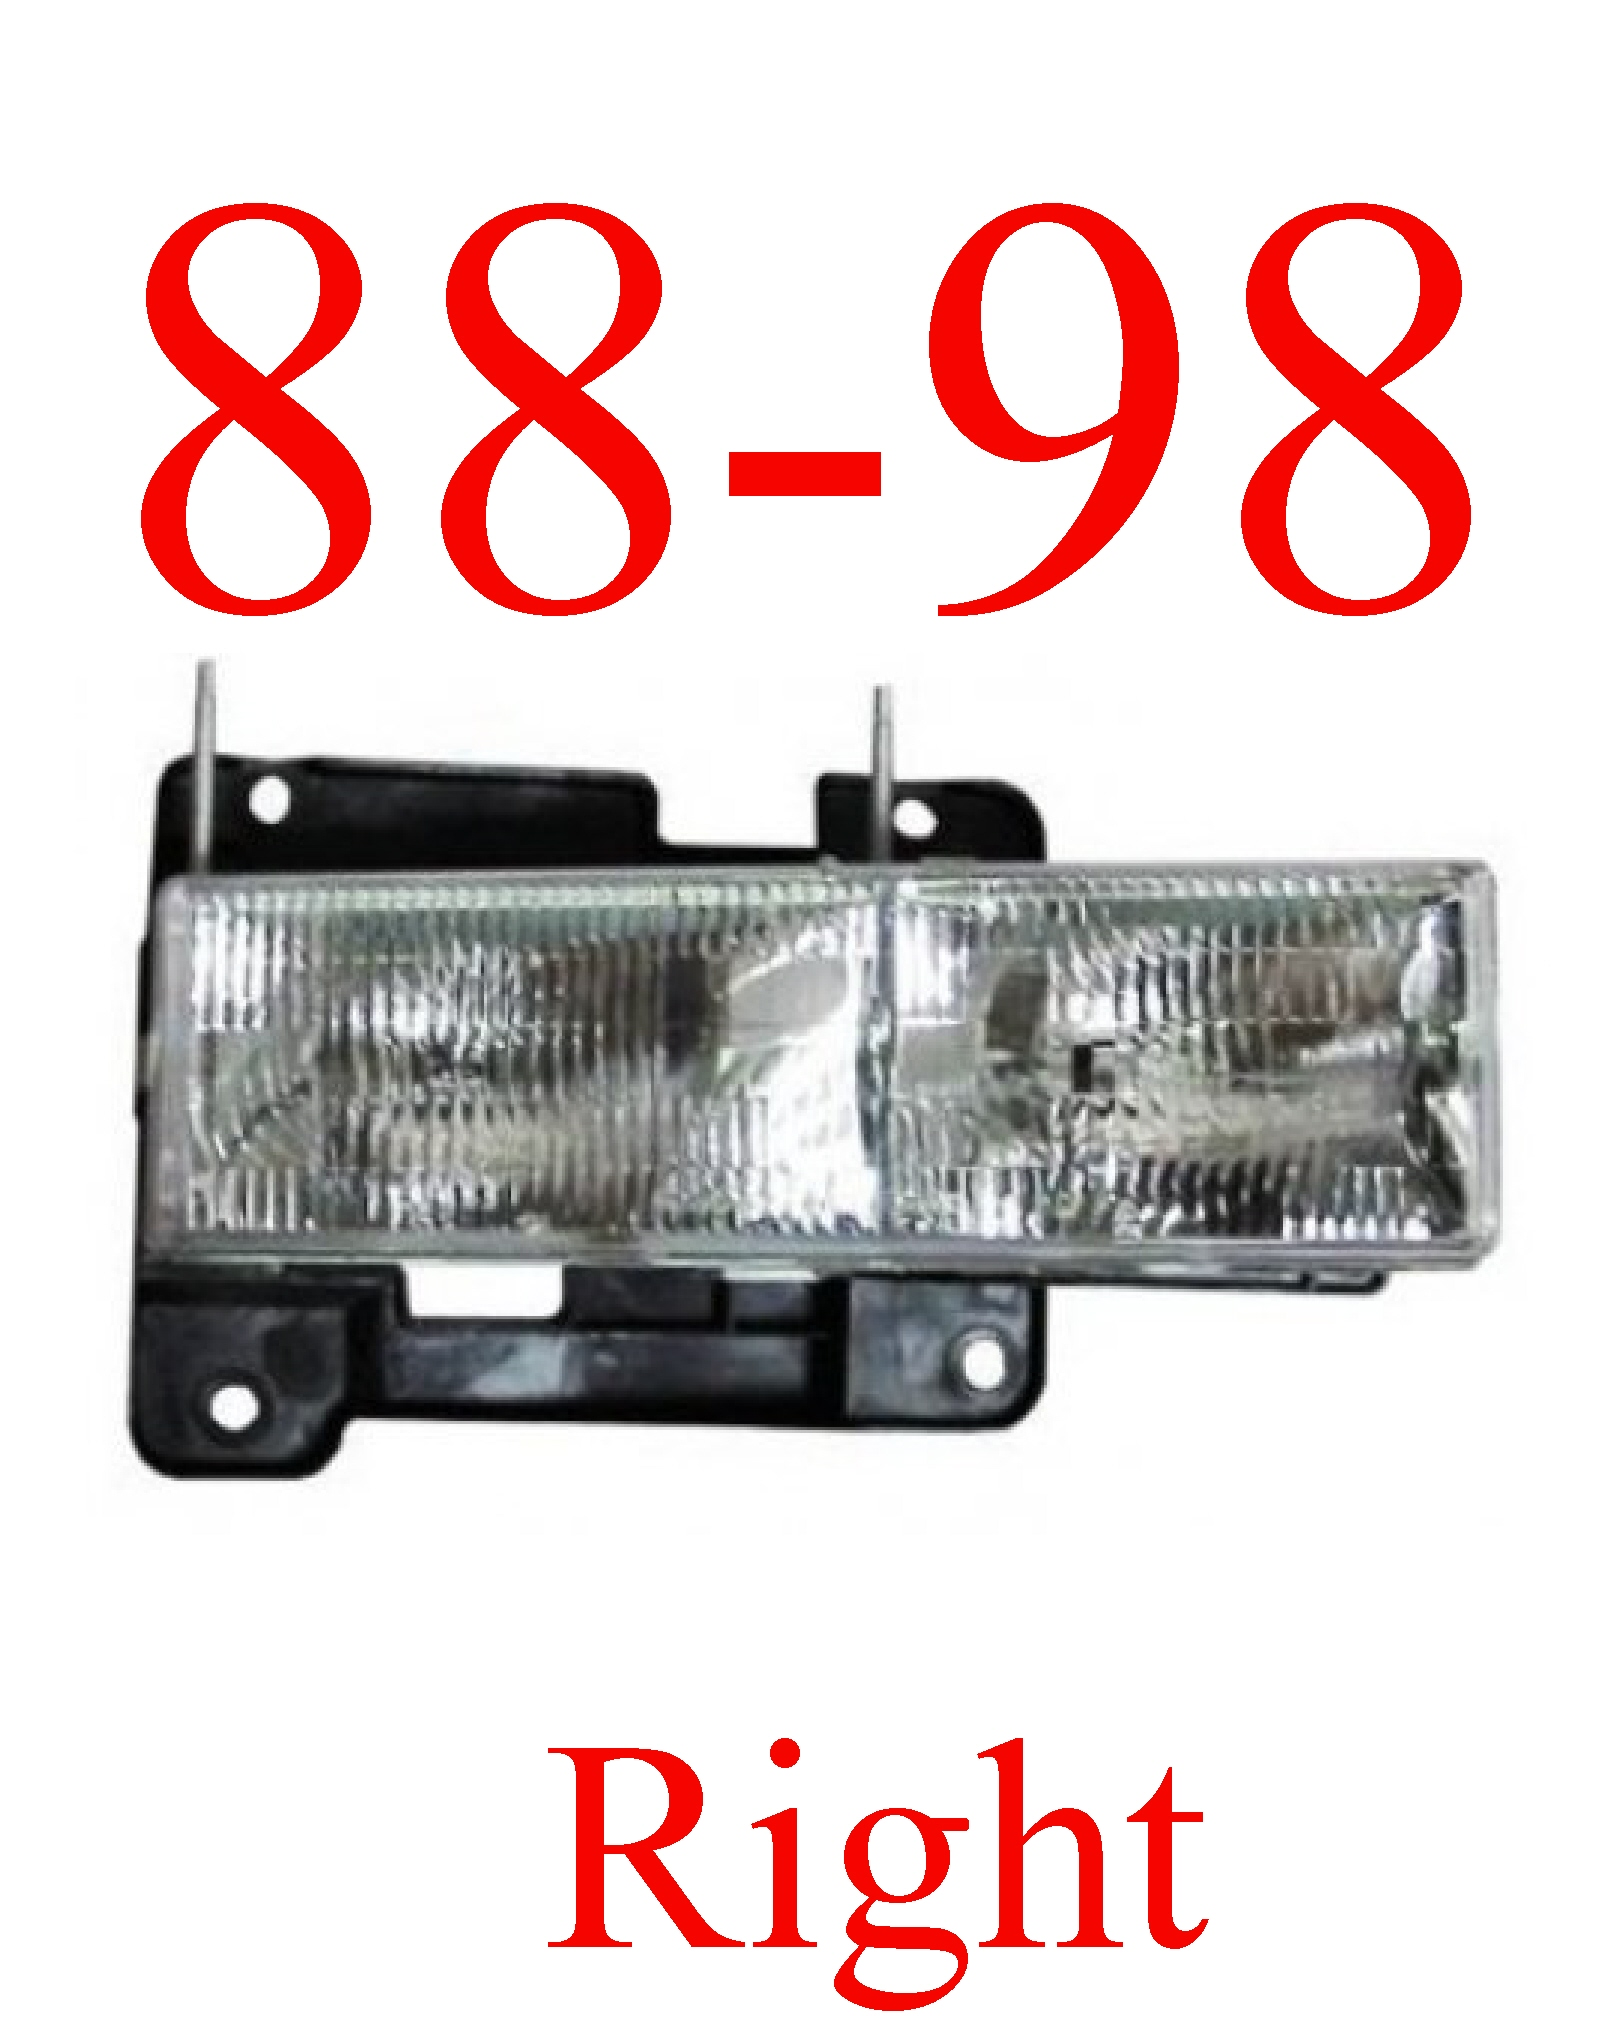 88-98 Chevy Right Head Light Assembly Composite